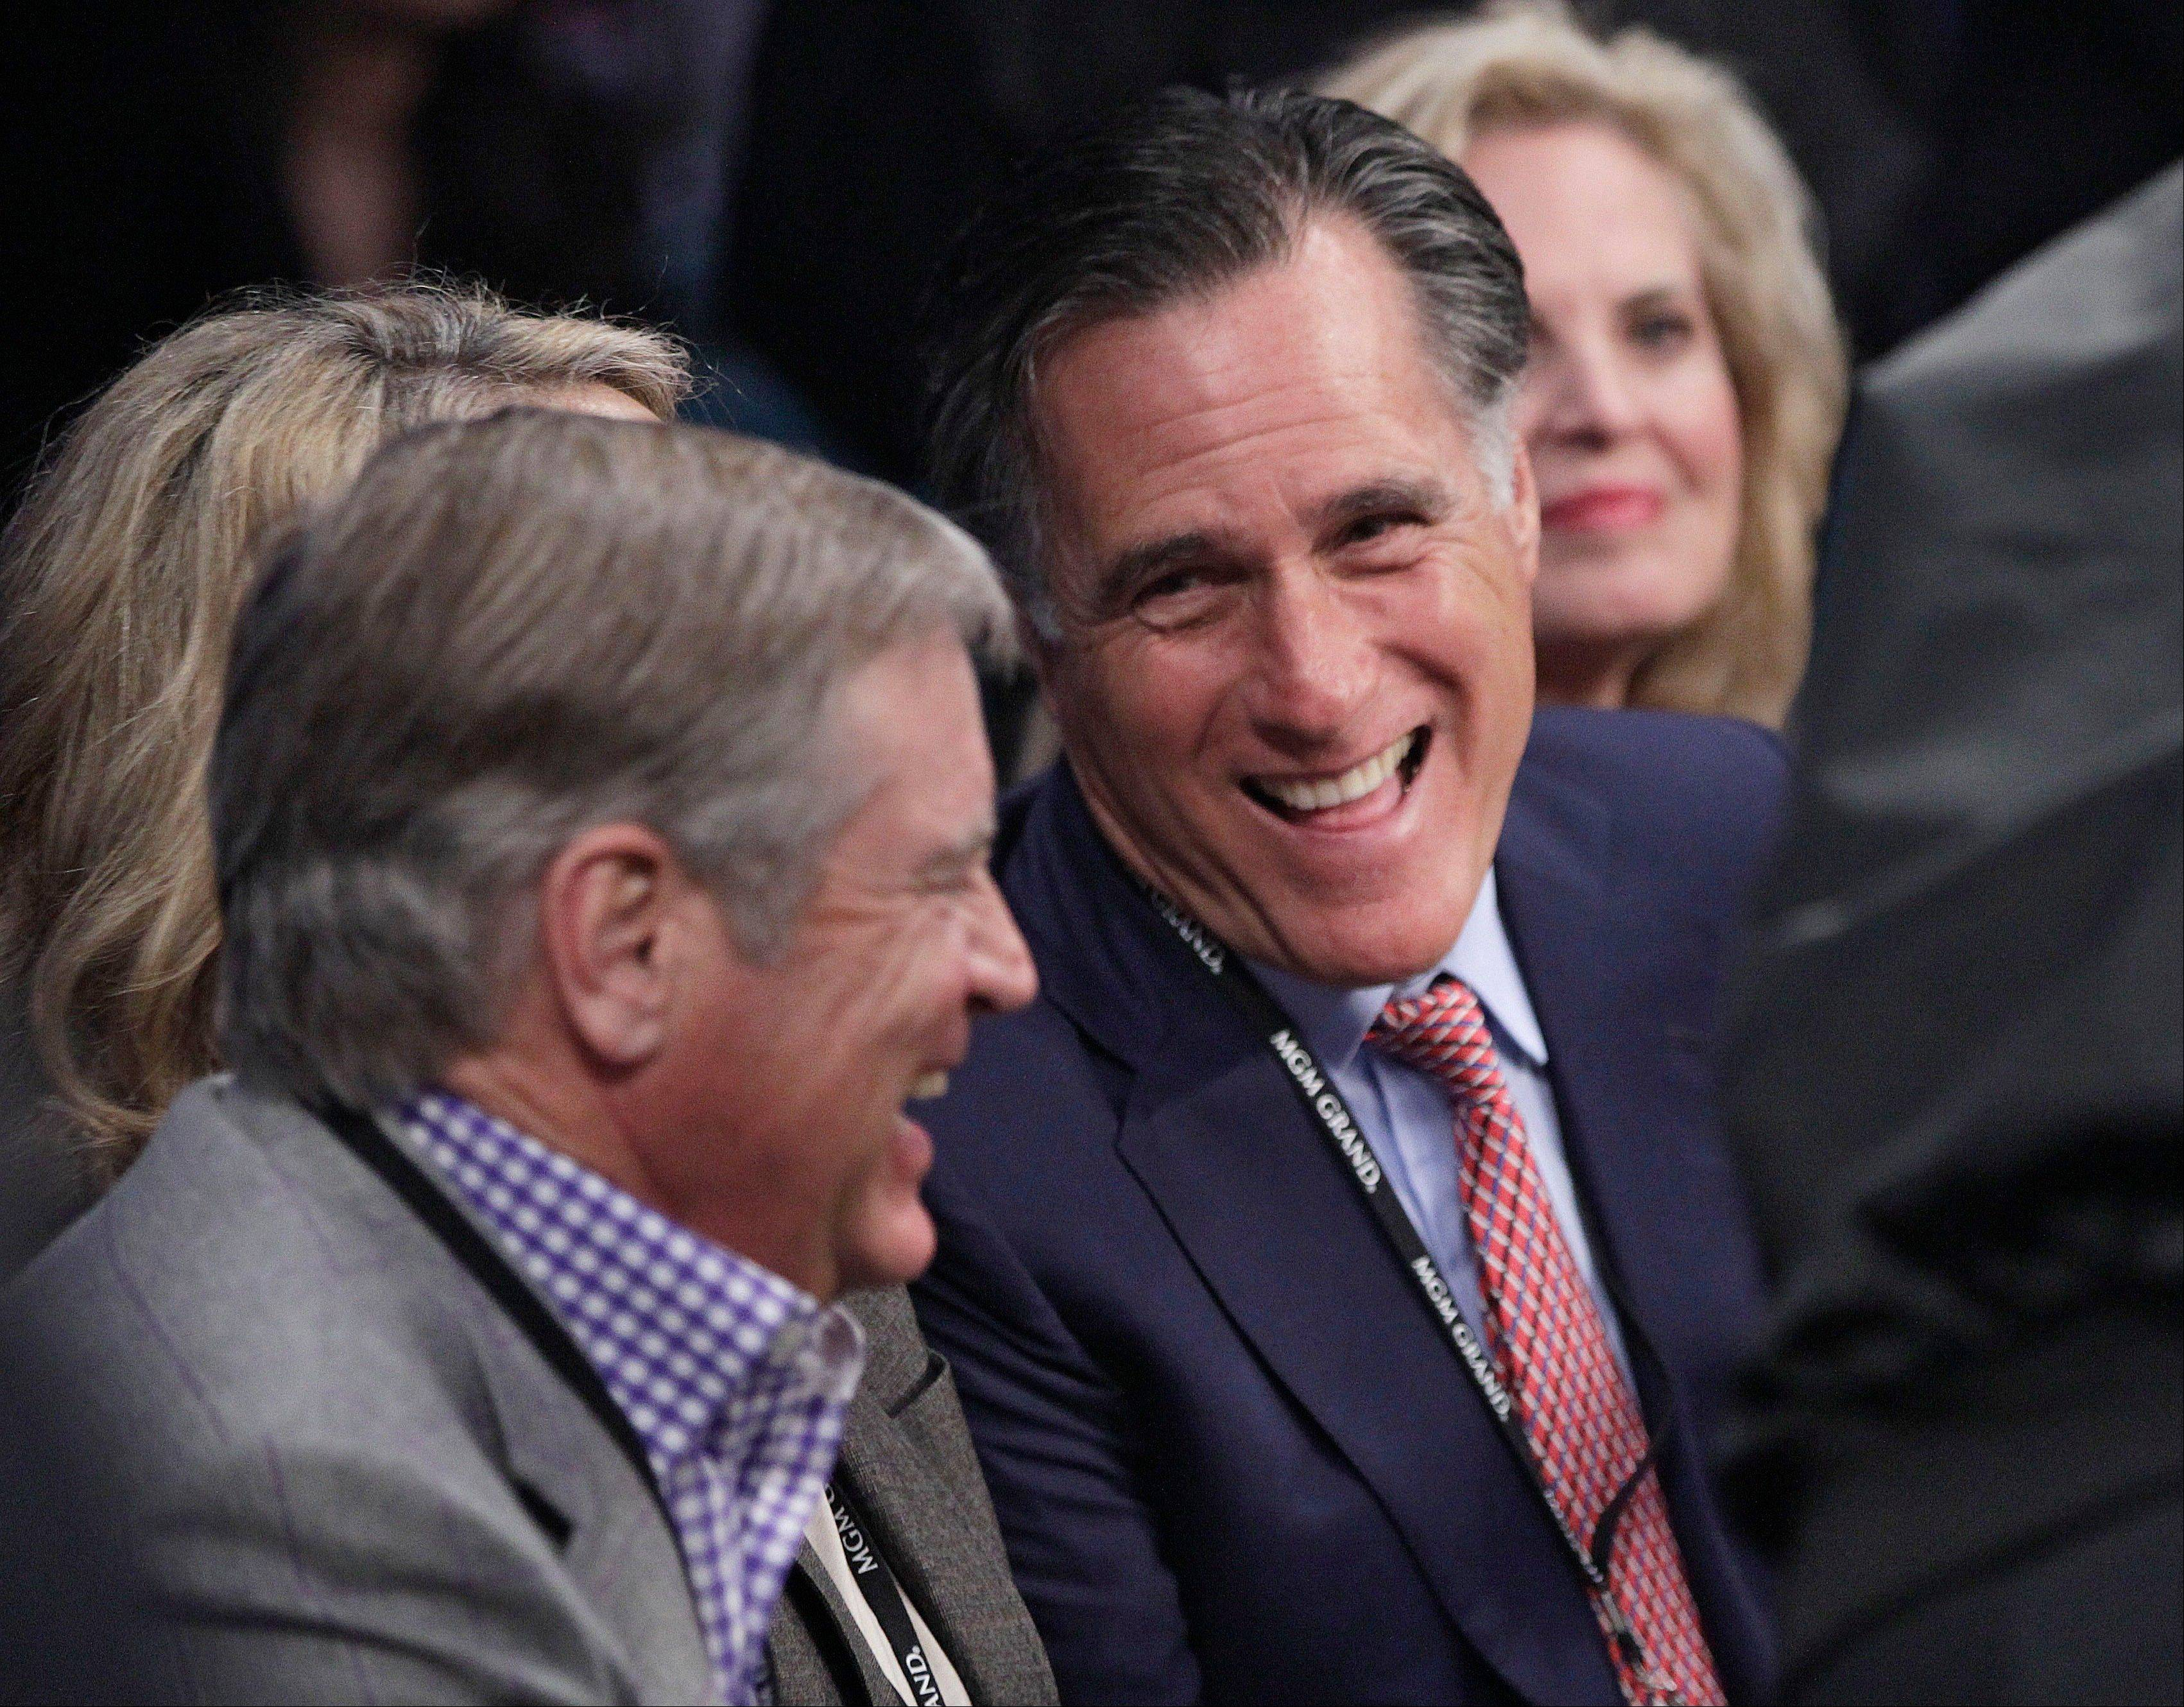 Former Republican presidential candidate Mitt Romney, center, joined by wife Ann, right, talks with an unidentified spectator at ringside prior to a welterweight title fight between Juan Manuel Marquez and Manny Pacquiao in Las Vegas.